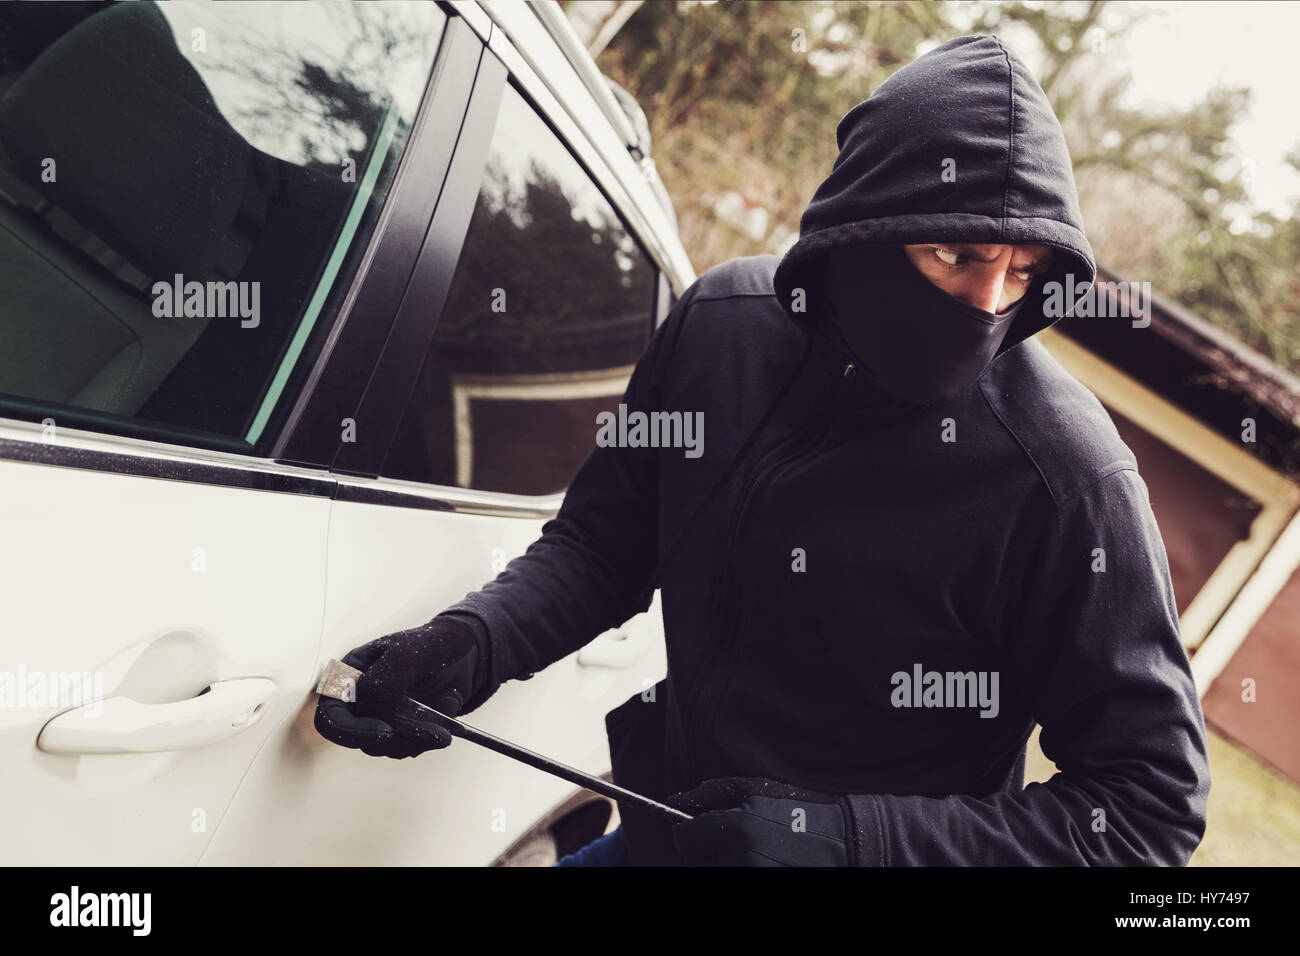 car theft - thief trying to break into the vehicle - Stock Image